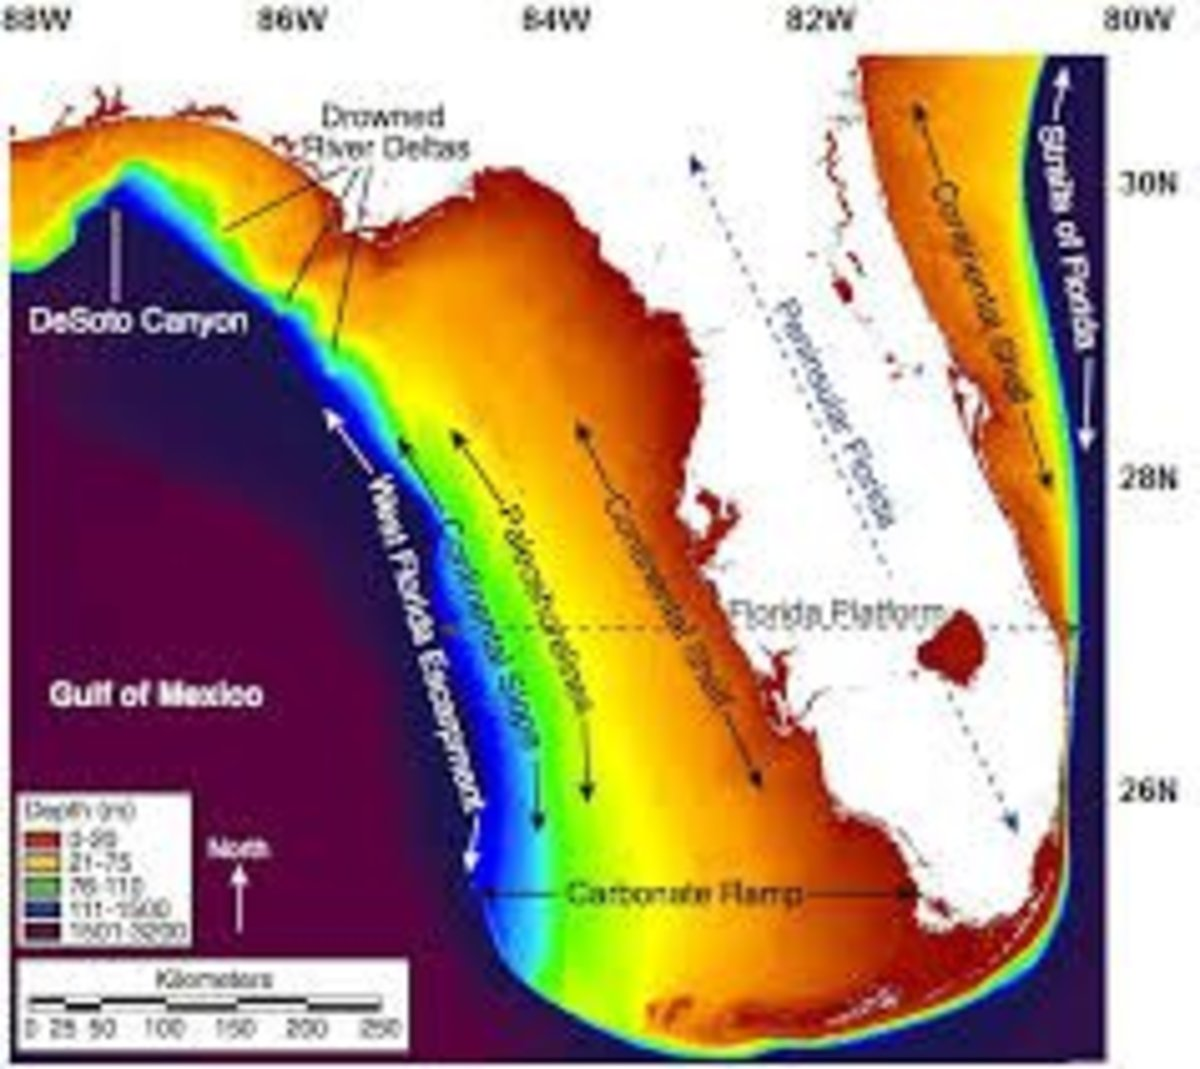 Prehistoric Florida, 12,000 years ago